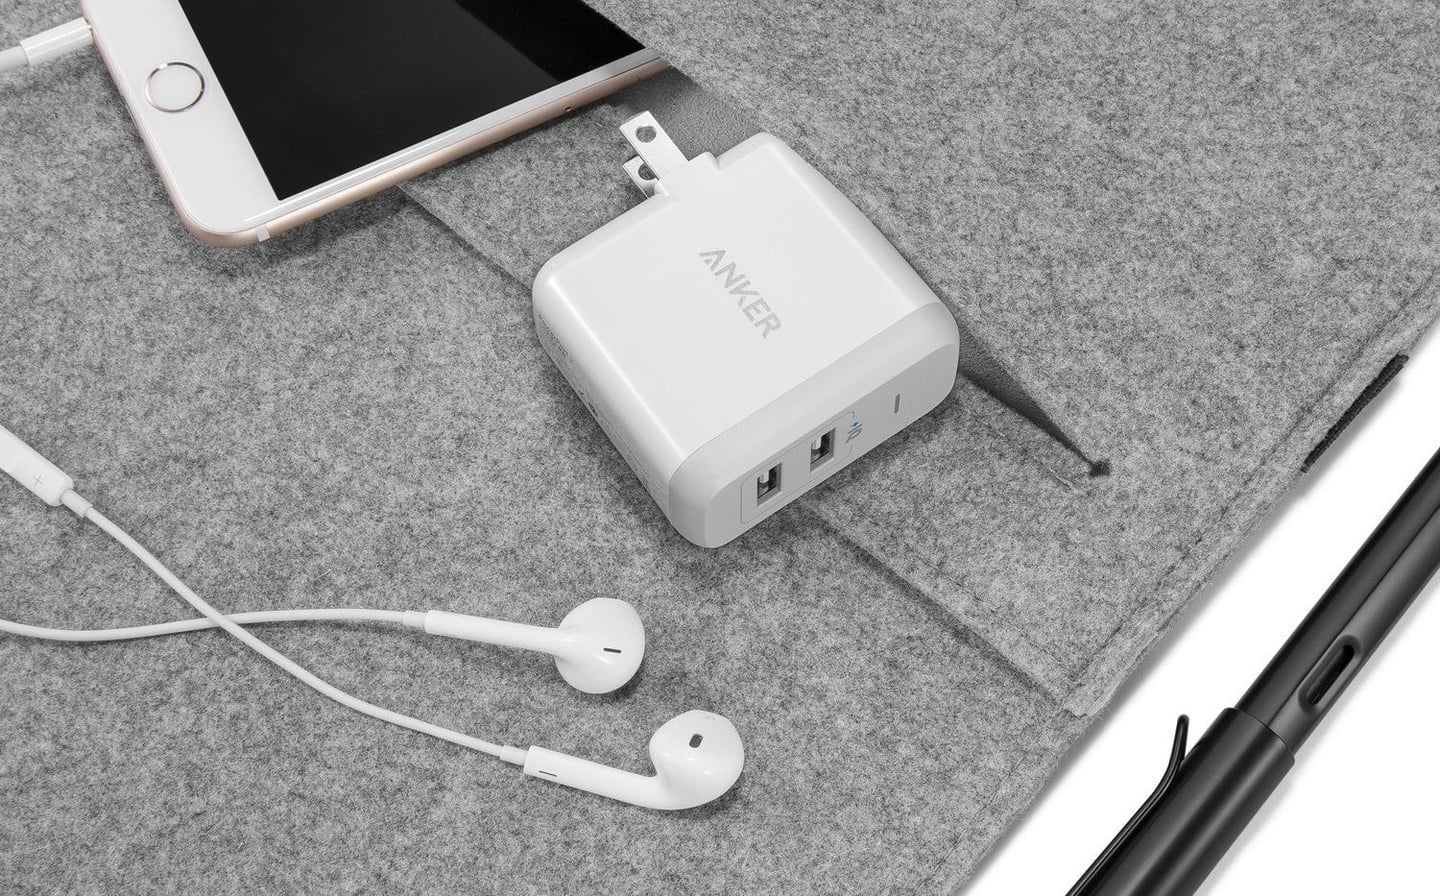 Anker's Popular 2-Port Wall Charger is Cheaper Than Ever